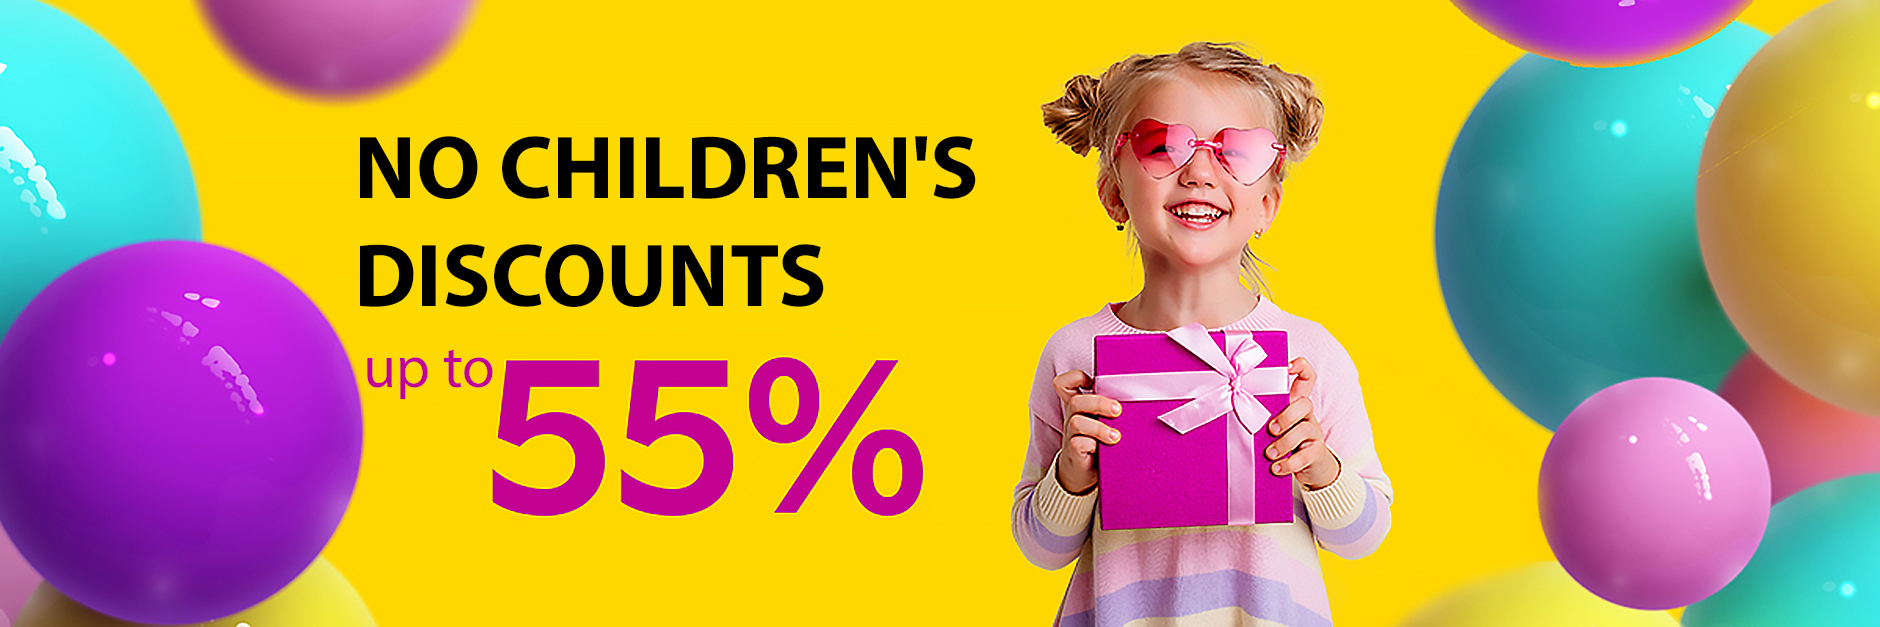 NO CHILDREN'S DISCOUNTS UP TO 55%